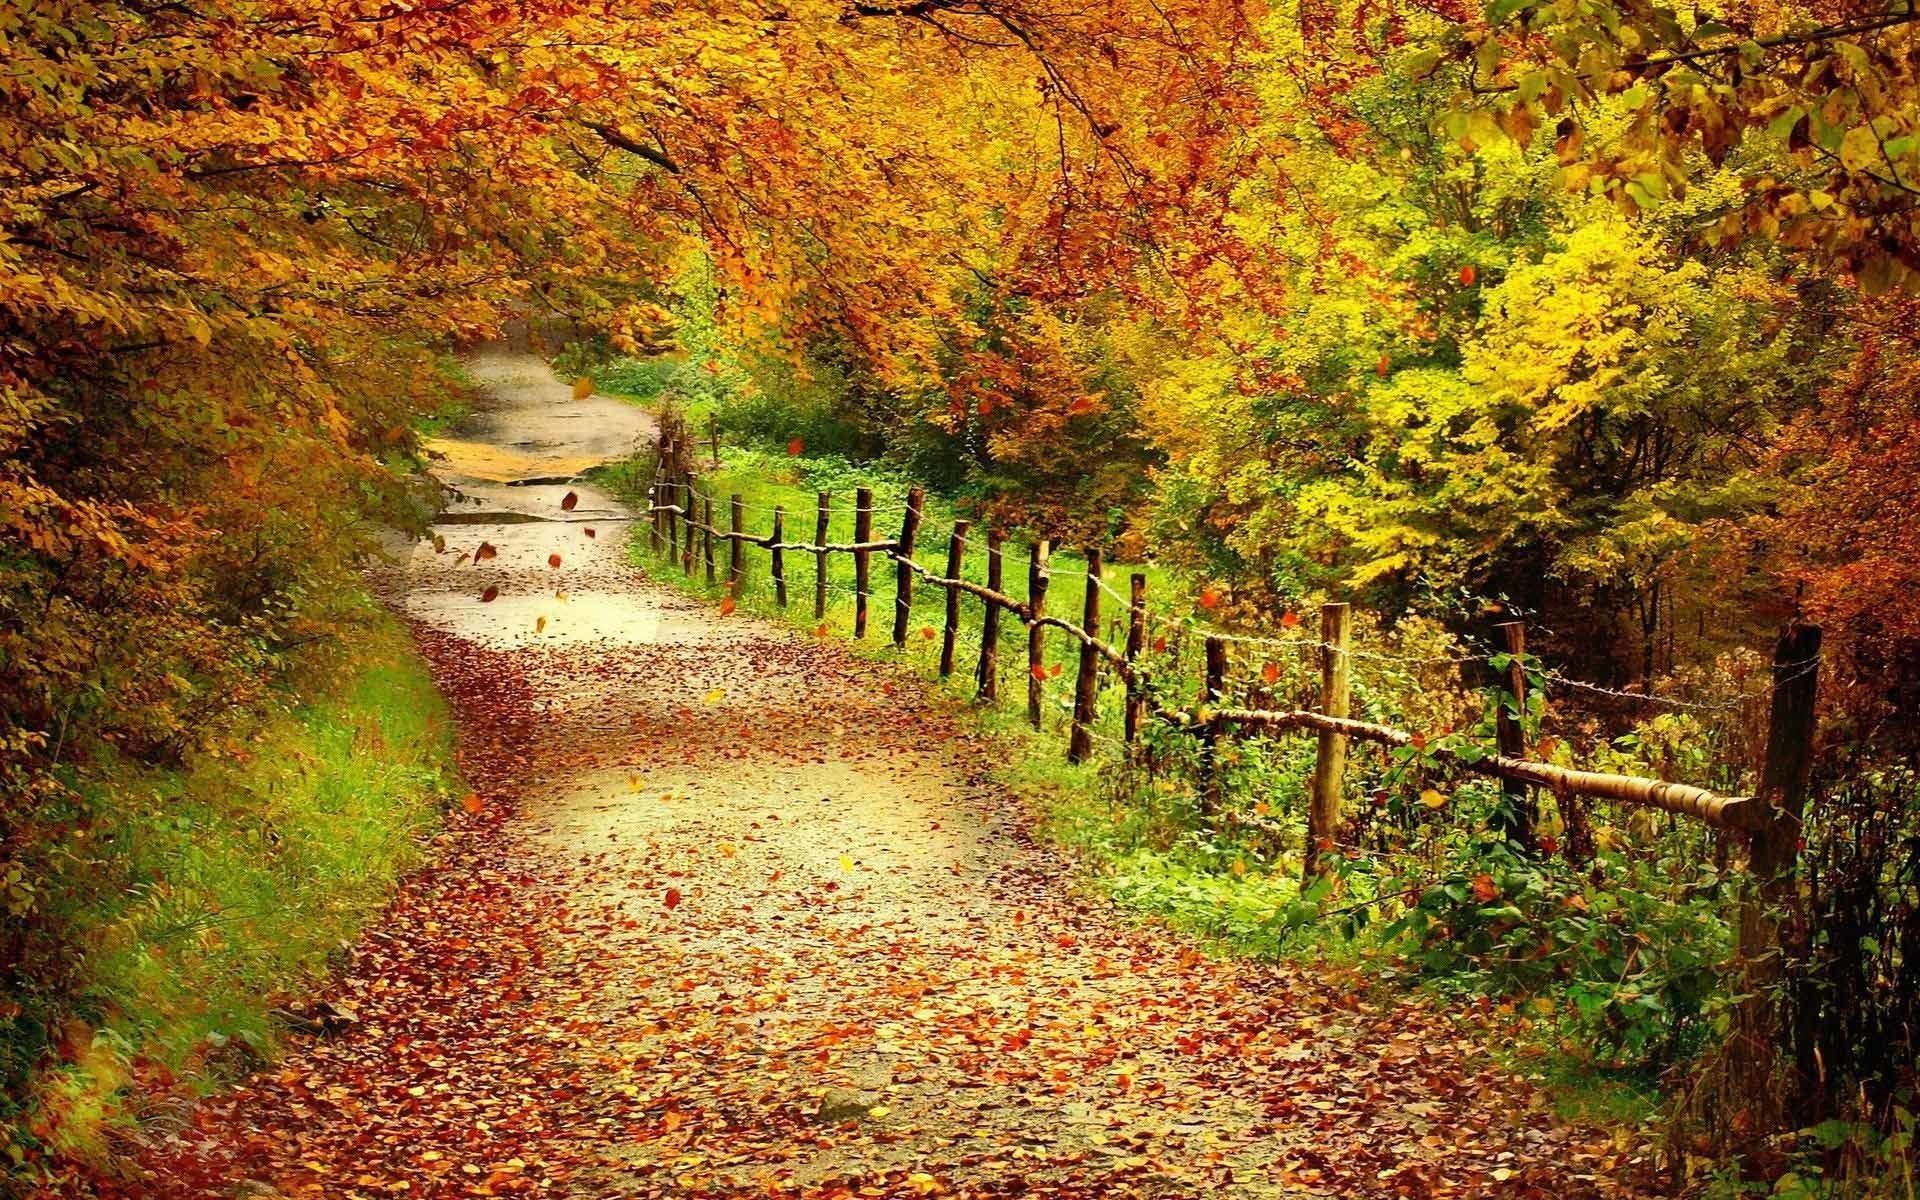 1920x1080 Autumn Fall Leaves Wallpapers HD Desktop Wallpaper, Background Image